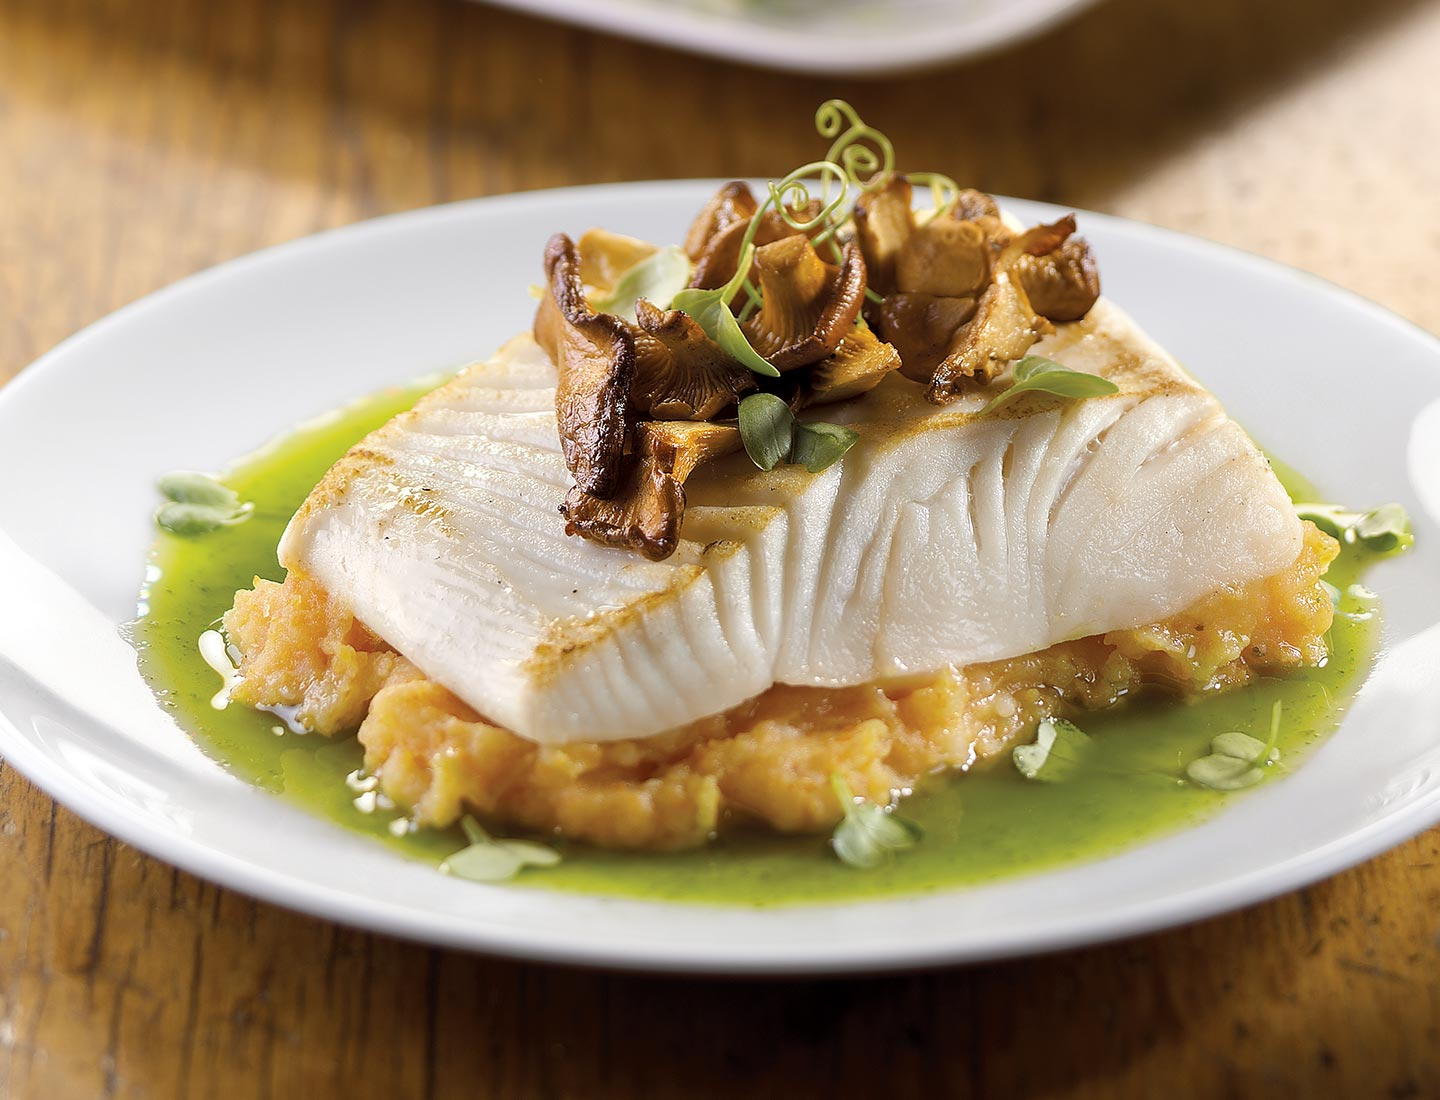 Baked Halibut with Pureed Carrot & Cilantro